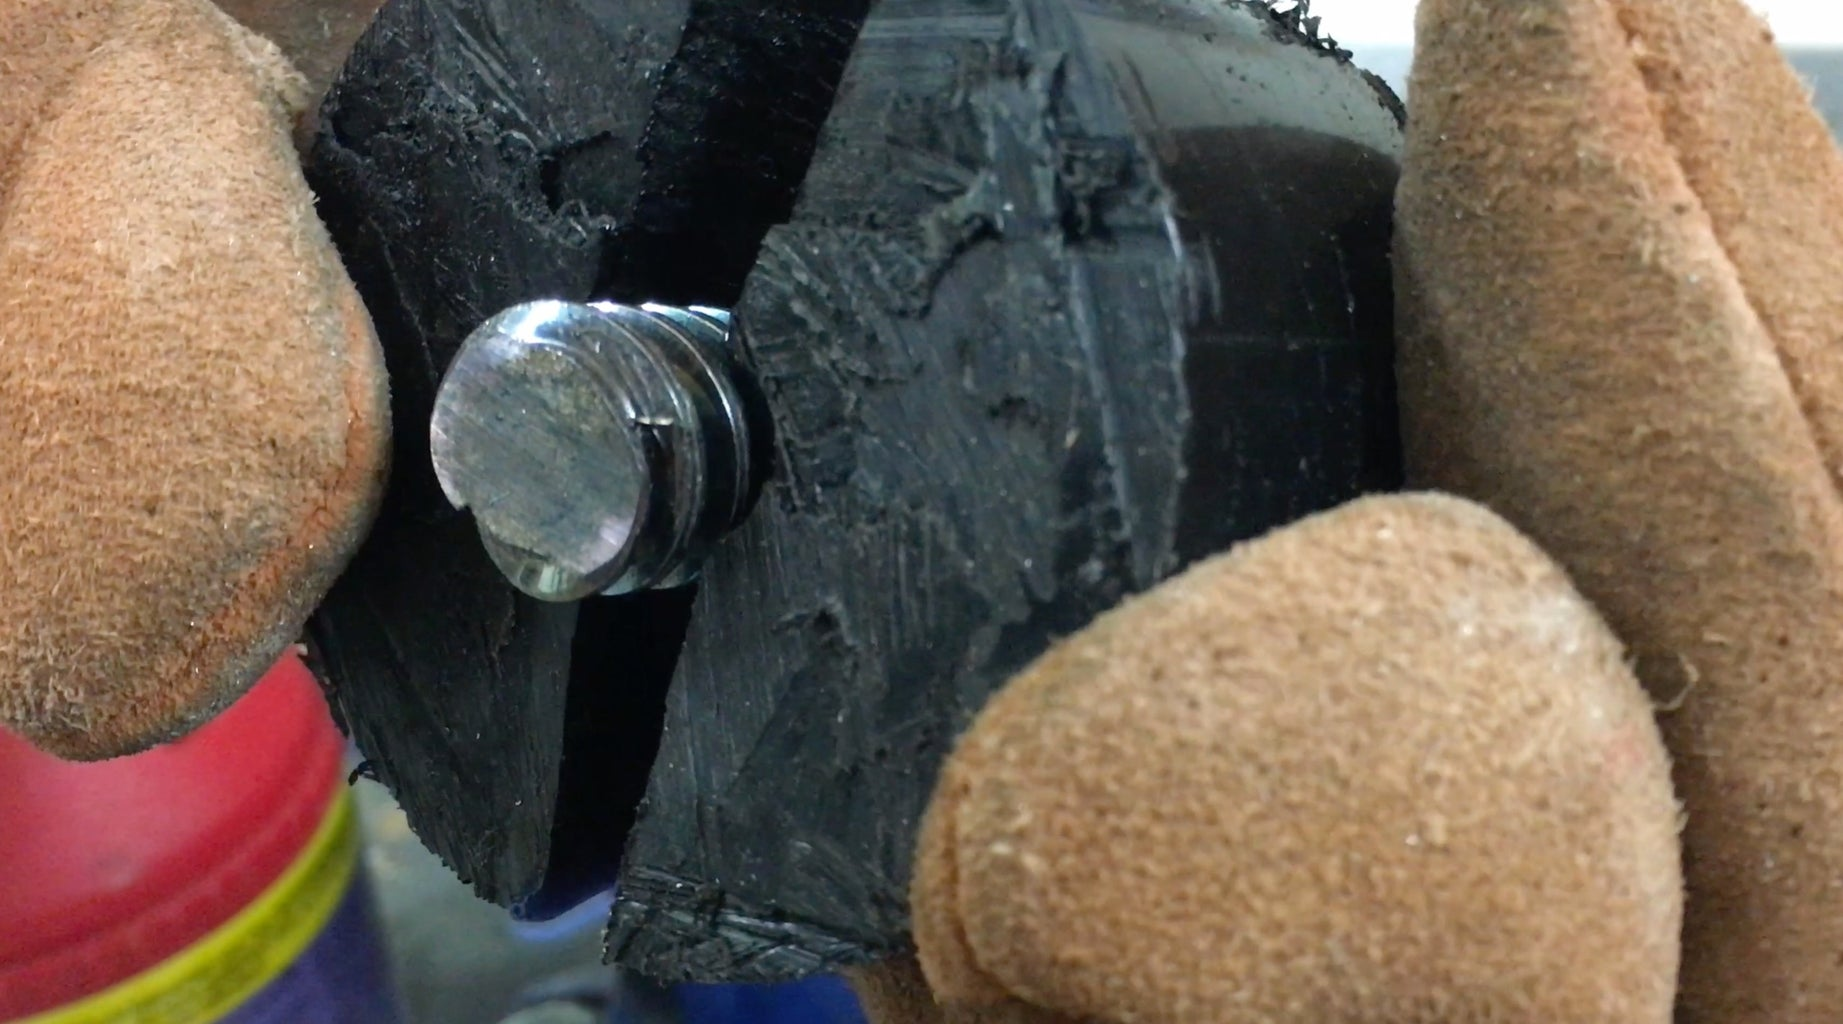 Melt the Delrin Stock Around the Lead Screw.